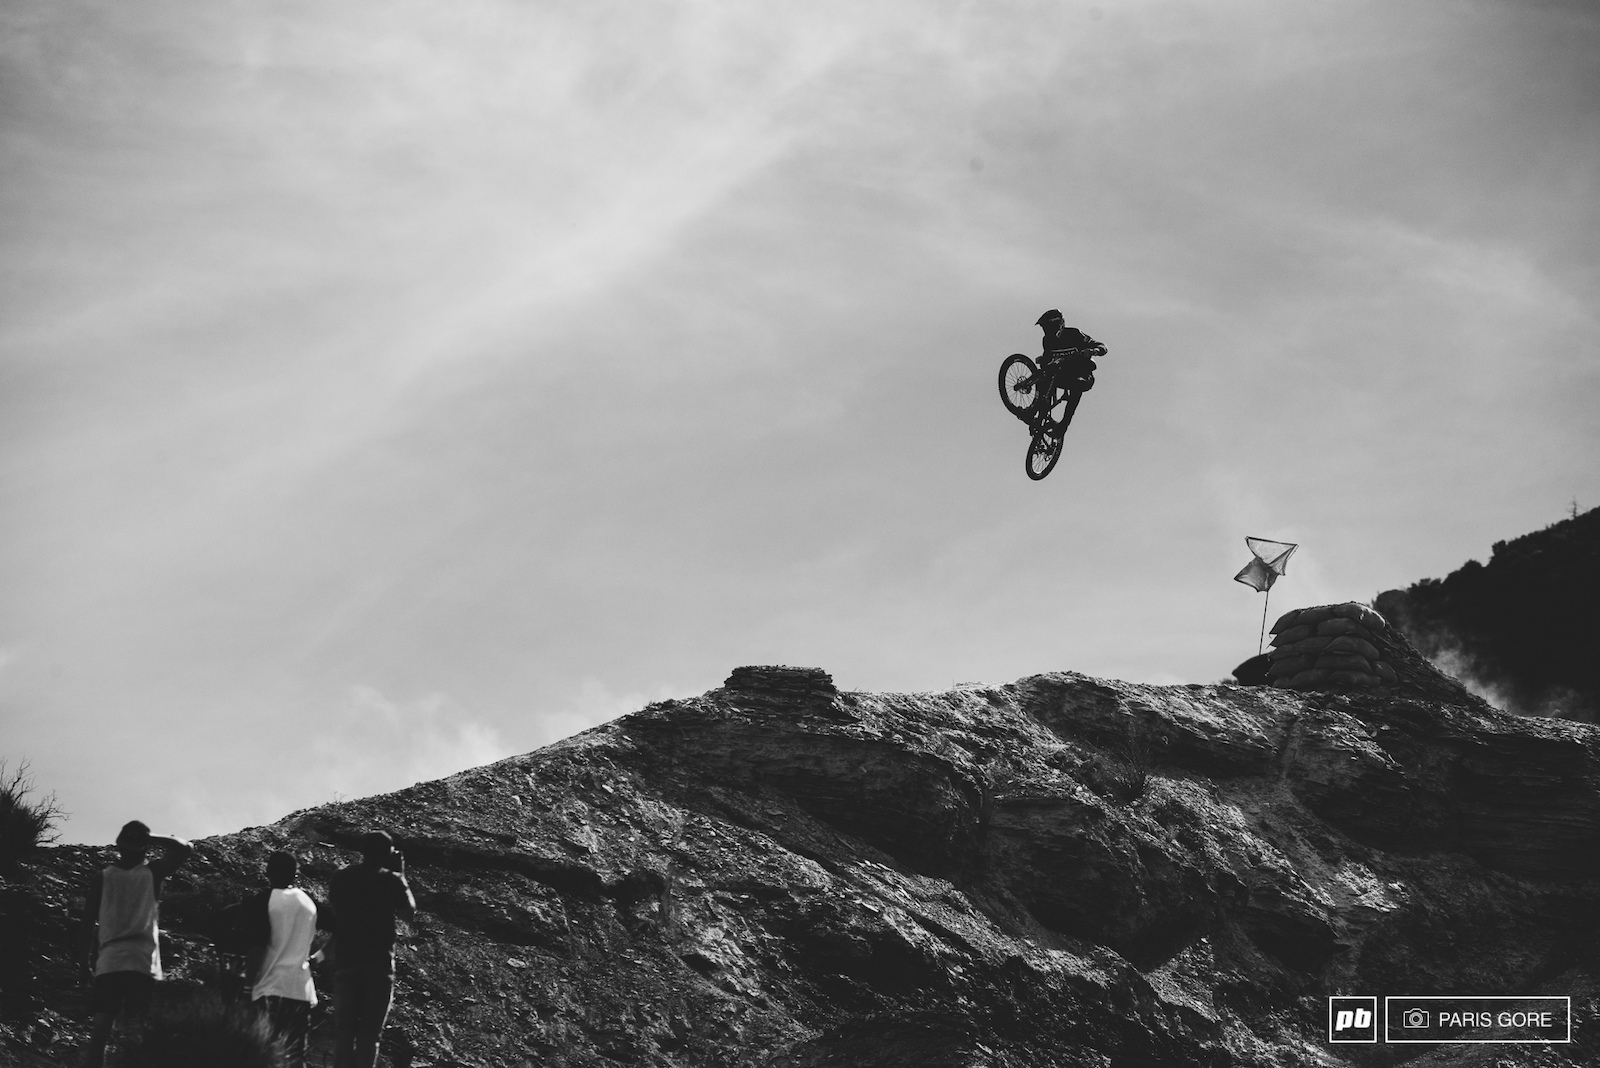 Connor McFarlane boosting off the top ridge and what looked like a killer run.